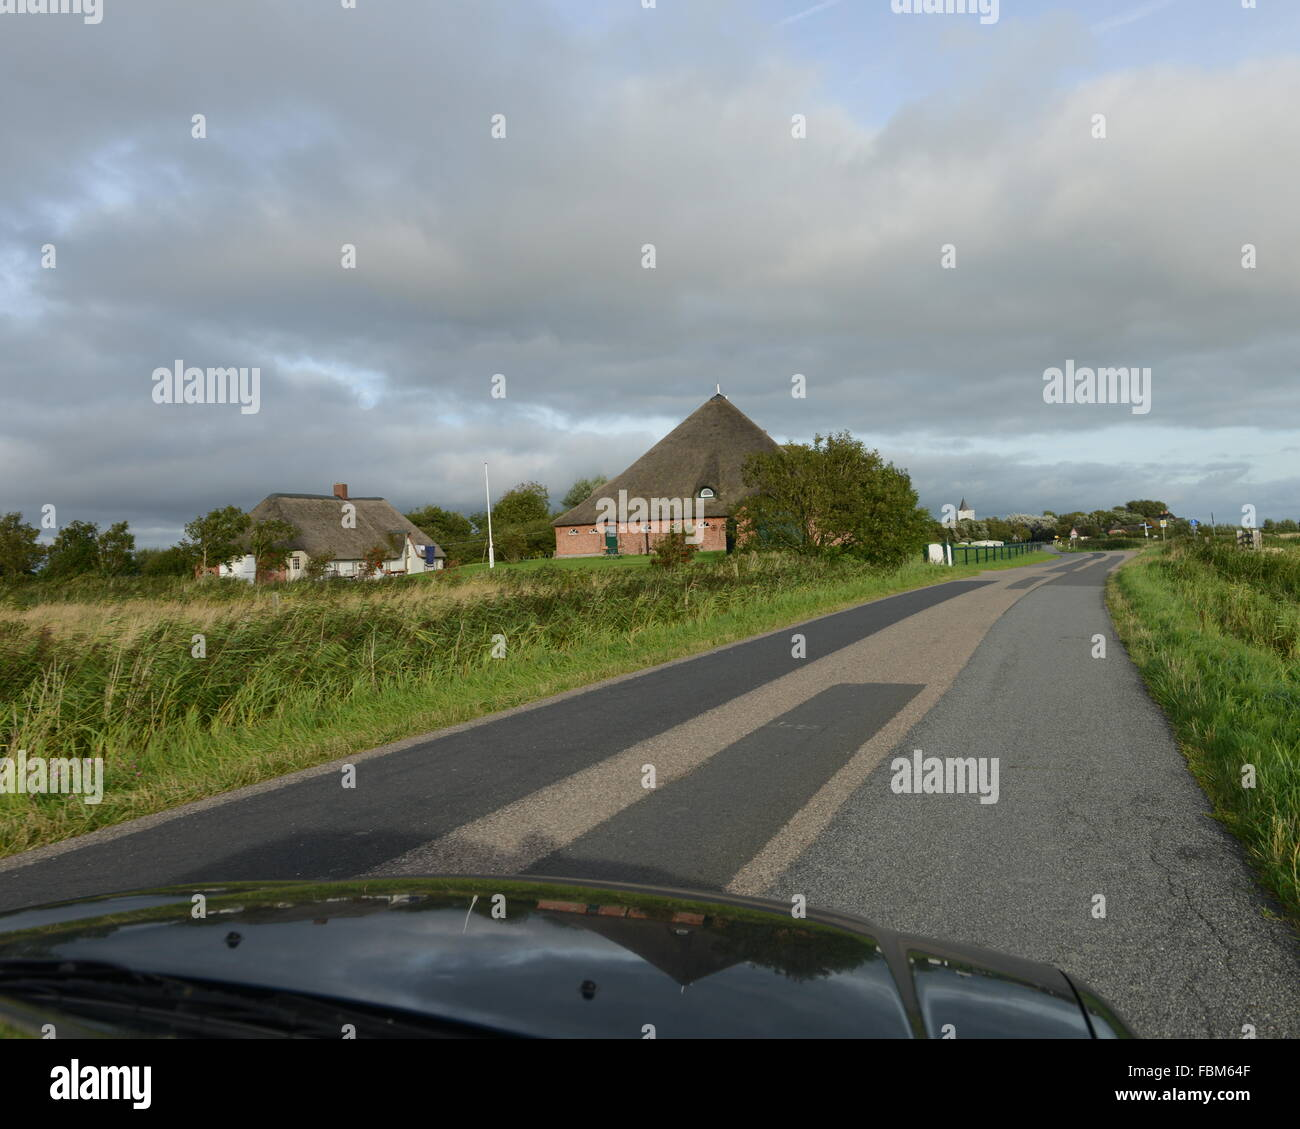 Cropped Image Of Car On Country Road By Houses Against Cloudy Sky - Stock Image